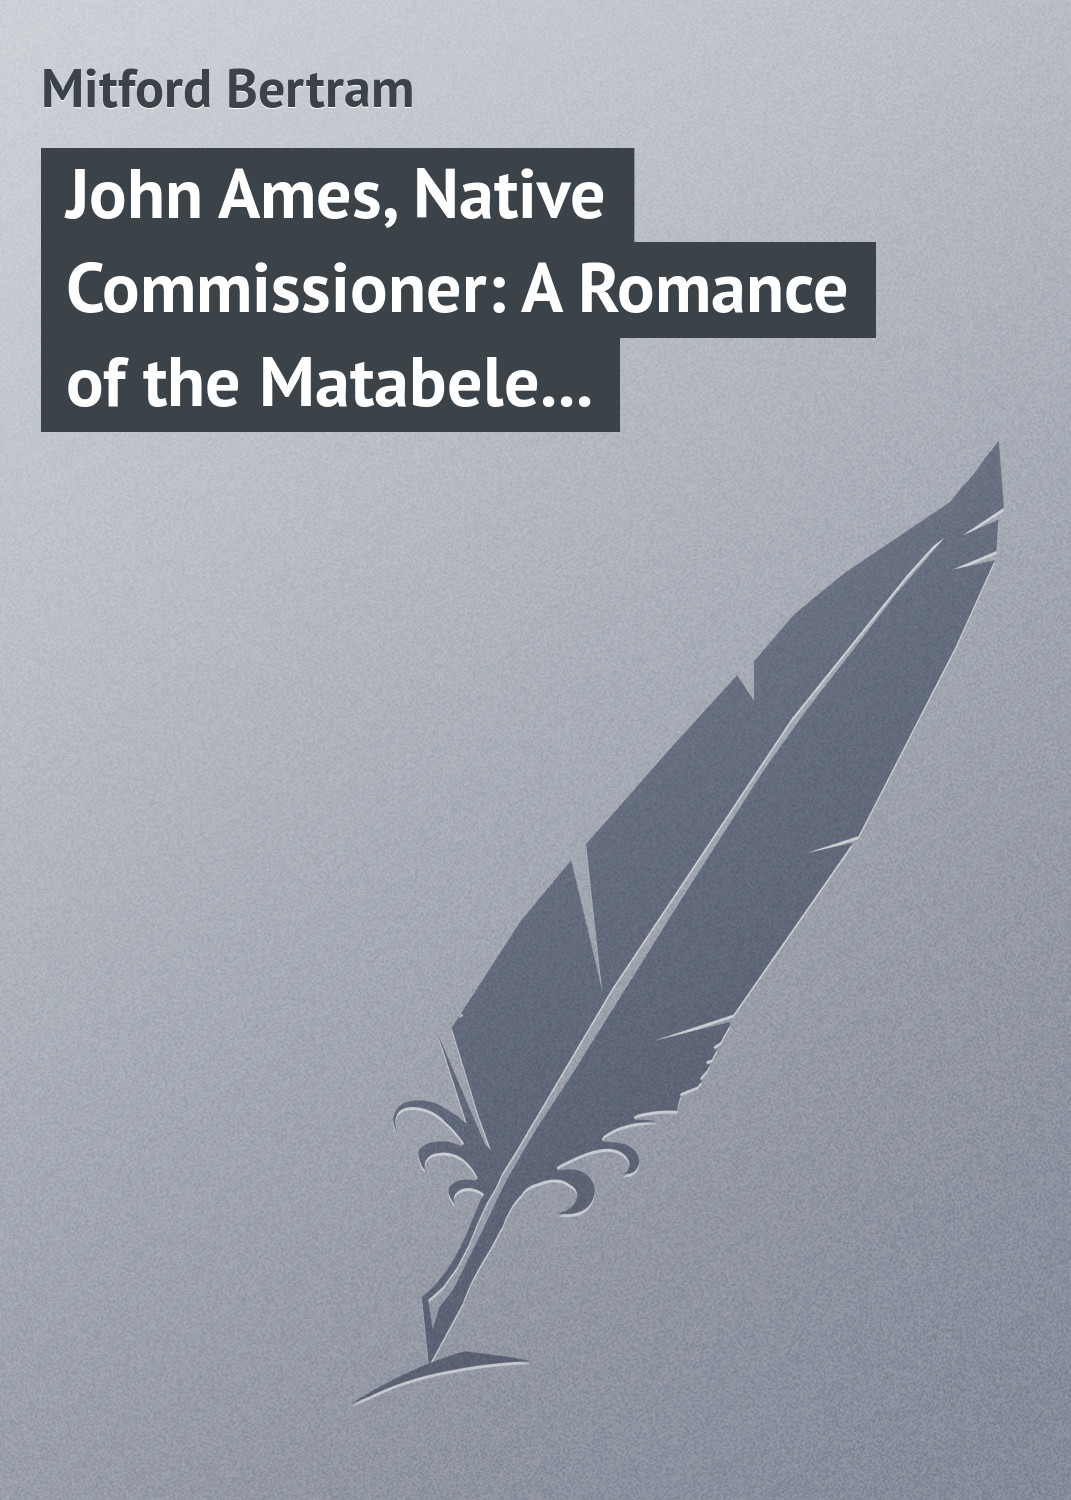 Mitford Bertram John Ames, Native Commissioner: A Romance of the Matabele Rising